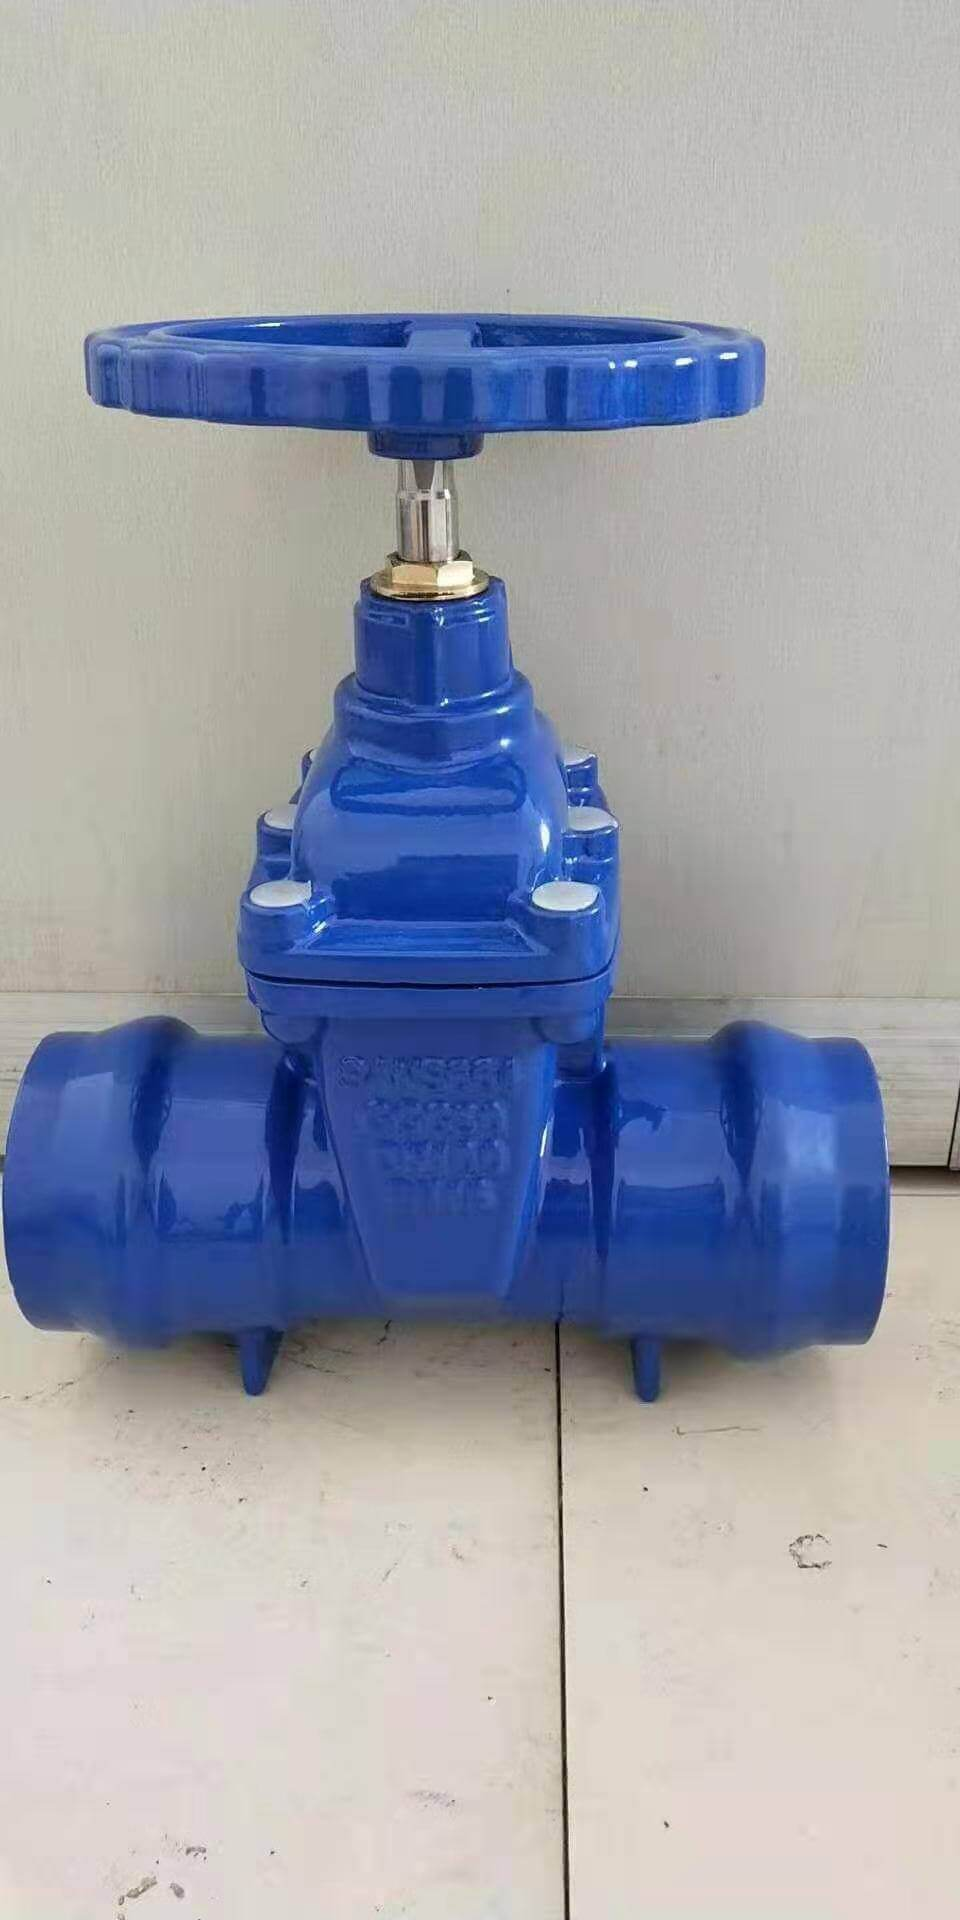 Socket ended resilient seated wedge gate valve-ductile iron (1)